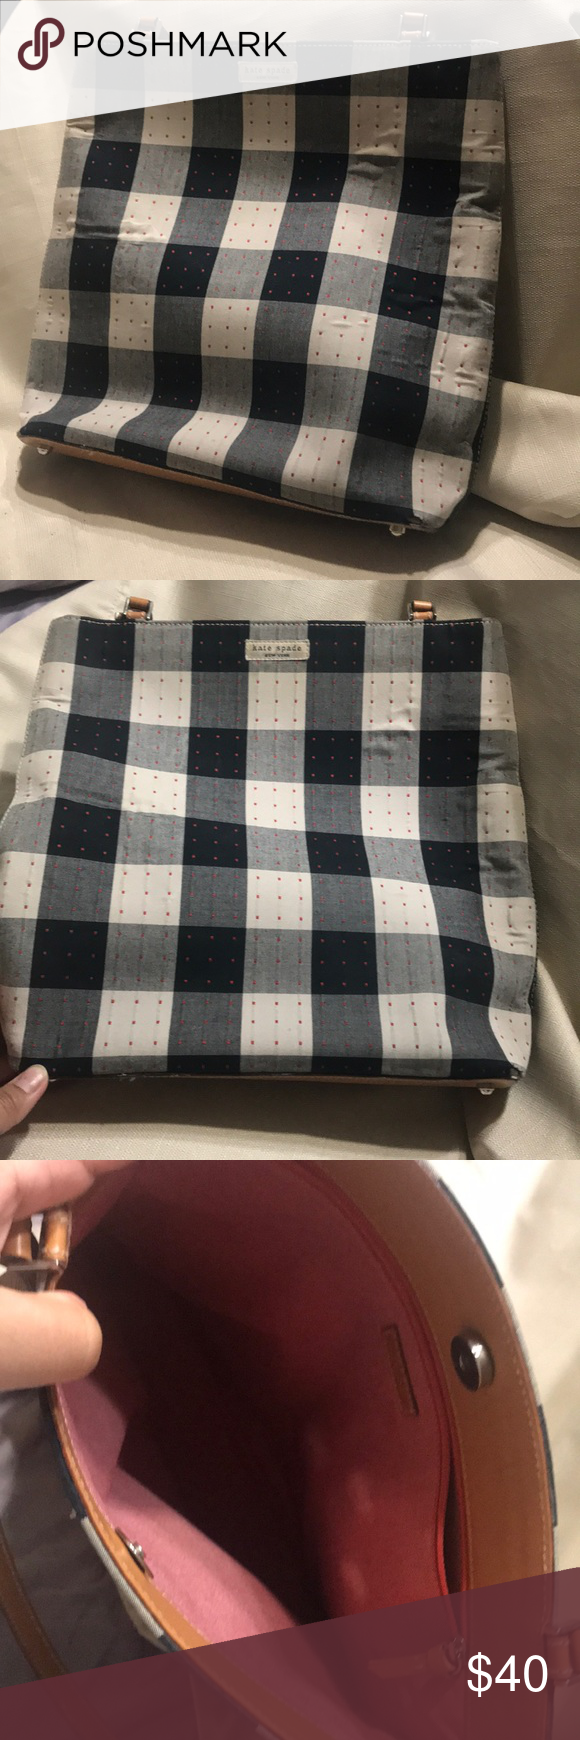 Kate Spade checkered purse in 2020 Kate spade bag, Kate